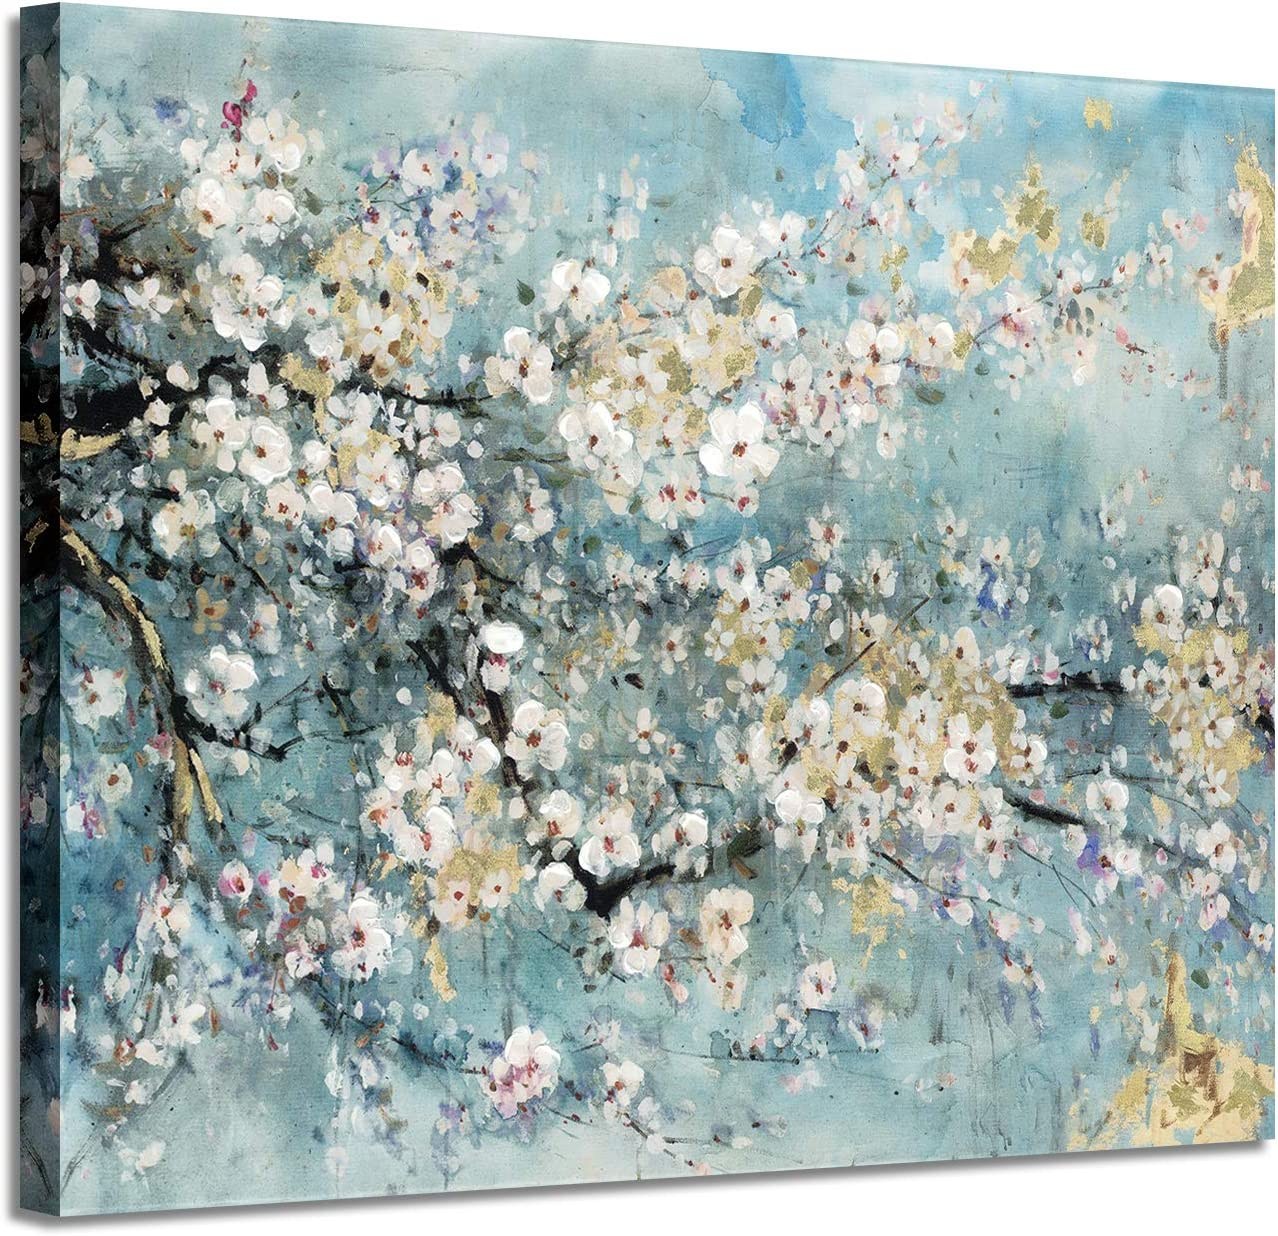 "Abstract Wall Art Flower Picture: Dogwood Bloom Painting Artwork Print on Canvas for Bedroom (24"" x 18"" x 1 Panel)"